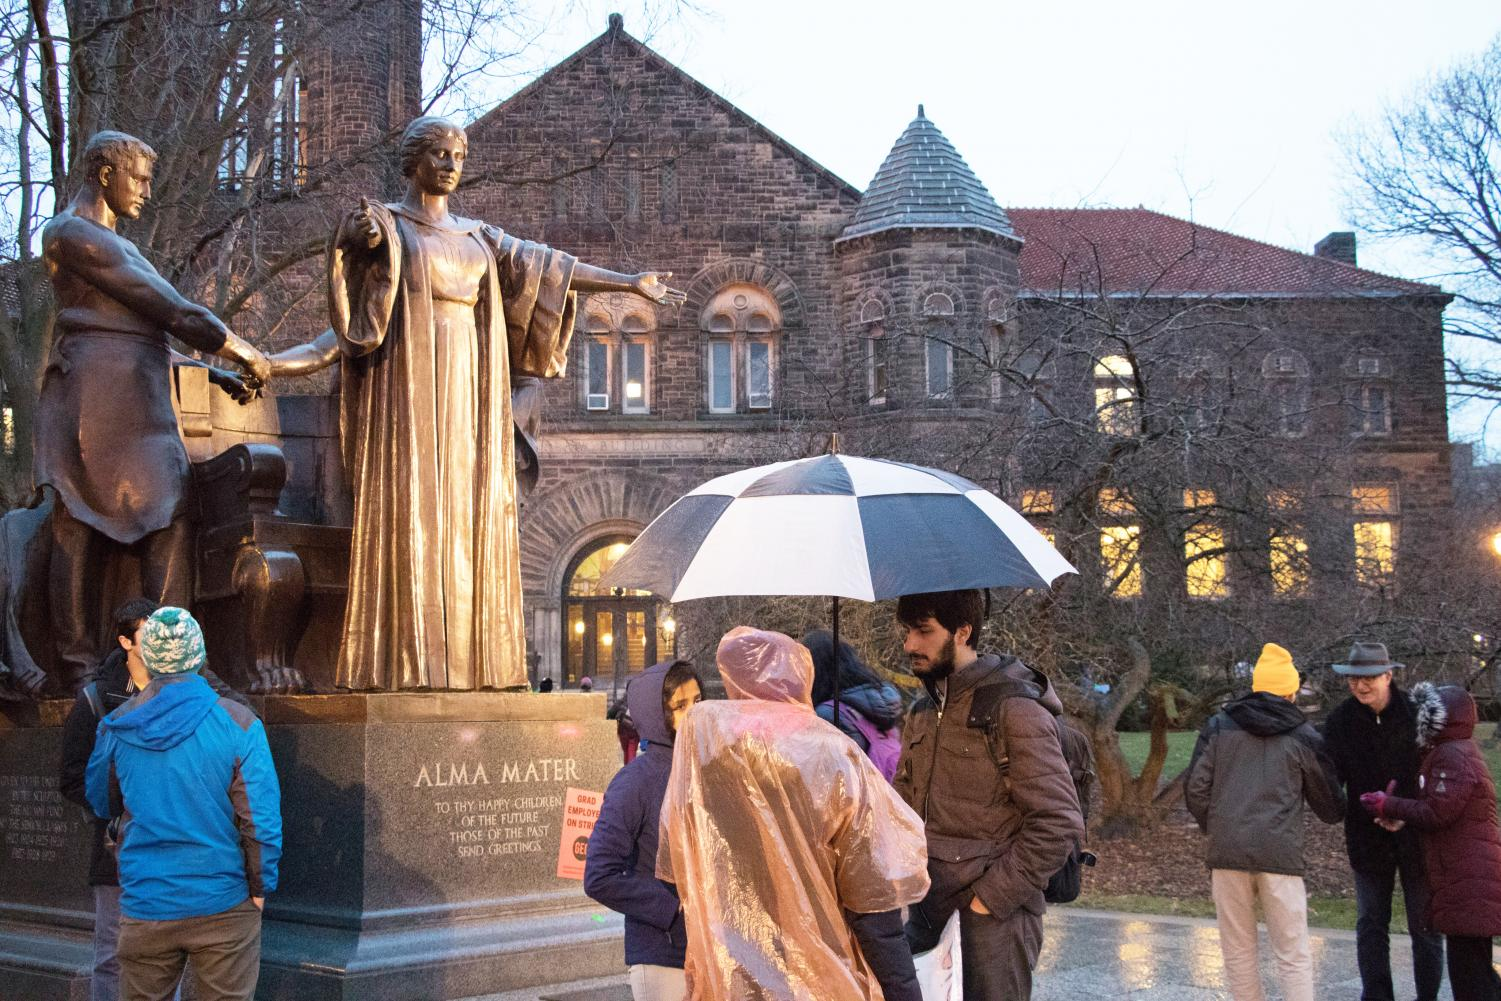 The Alma Mater statue is located on the corner of Wright and Green streets and is the site for many memorable photos.